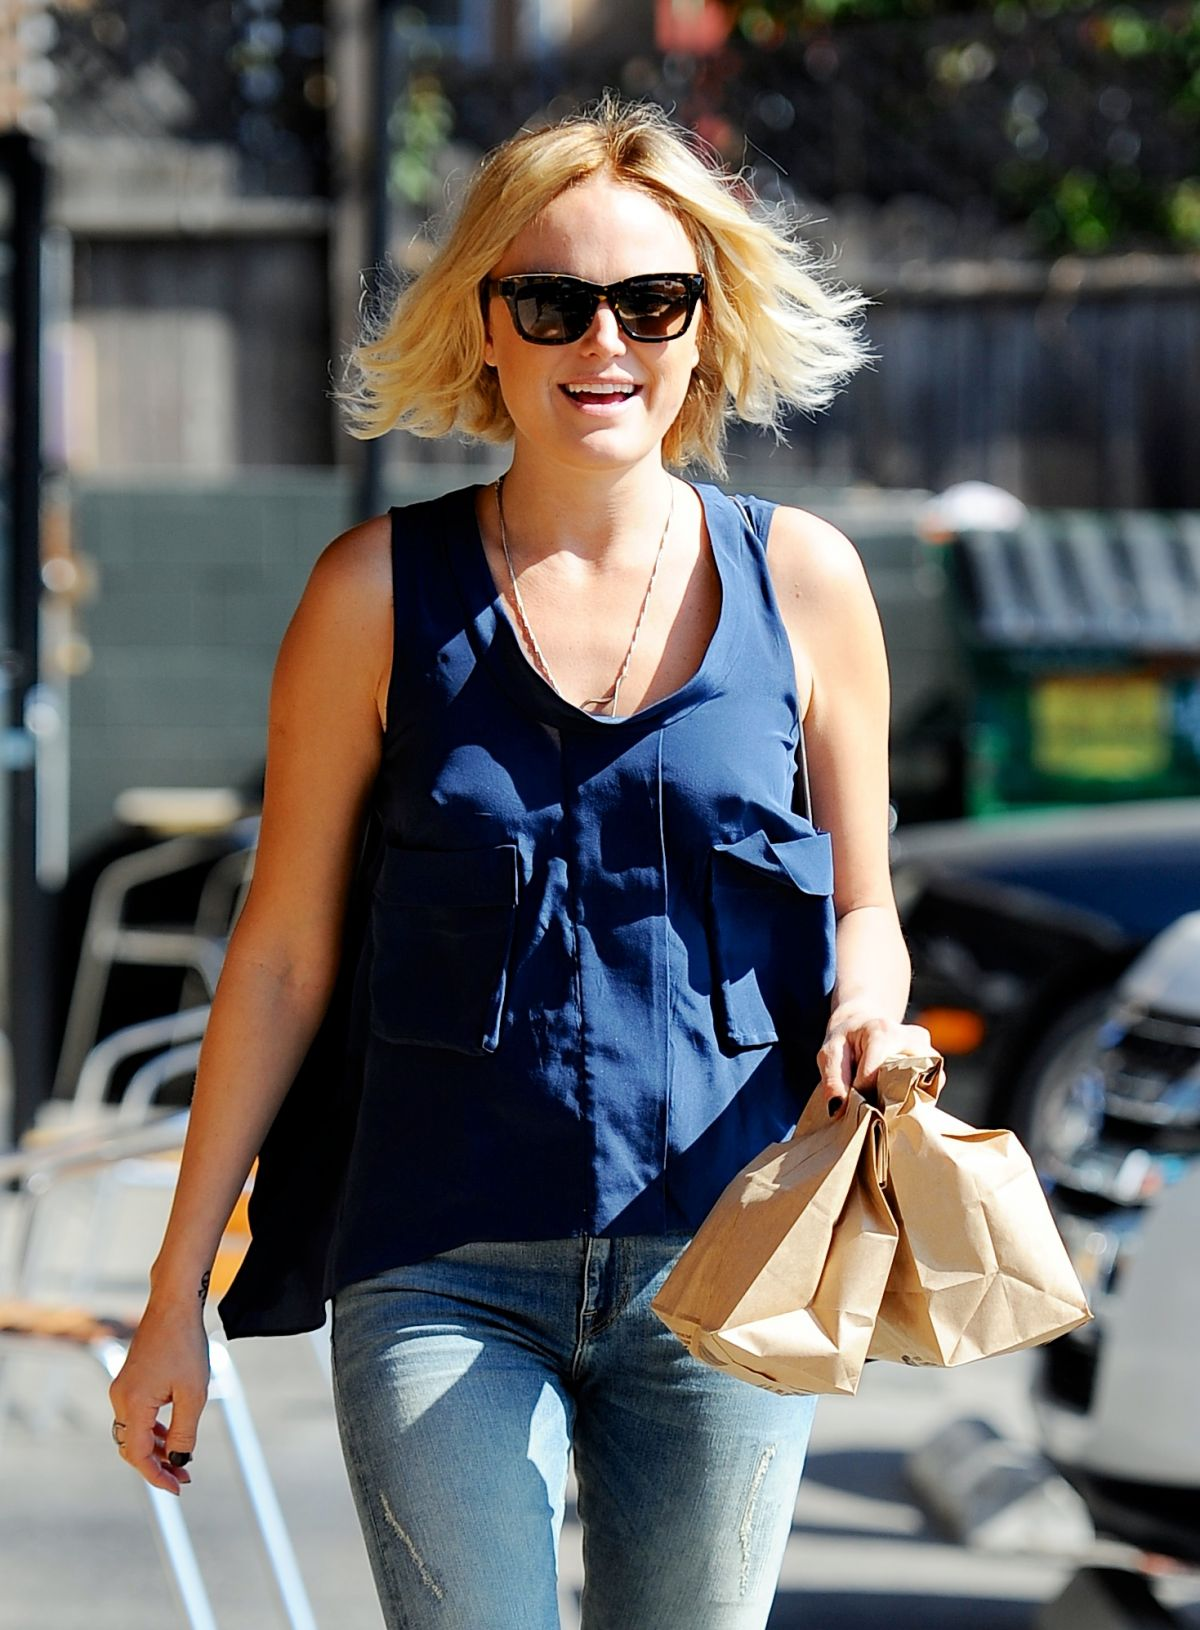 MALINAKERMAN Out for Lunch in Los Angeles